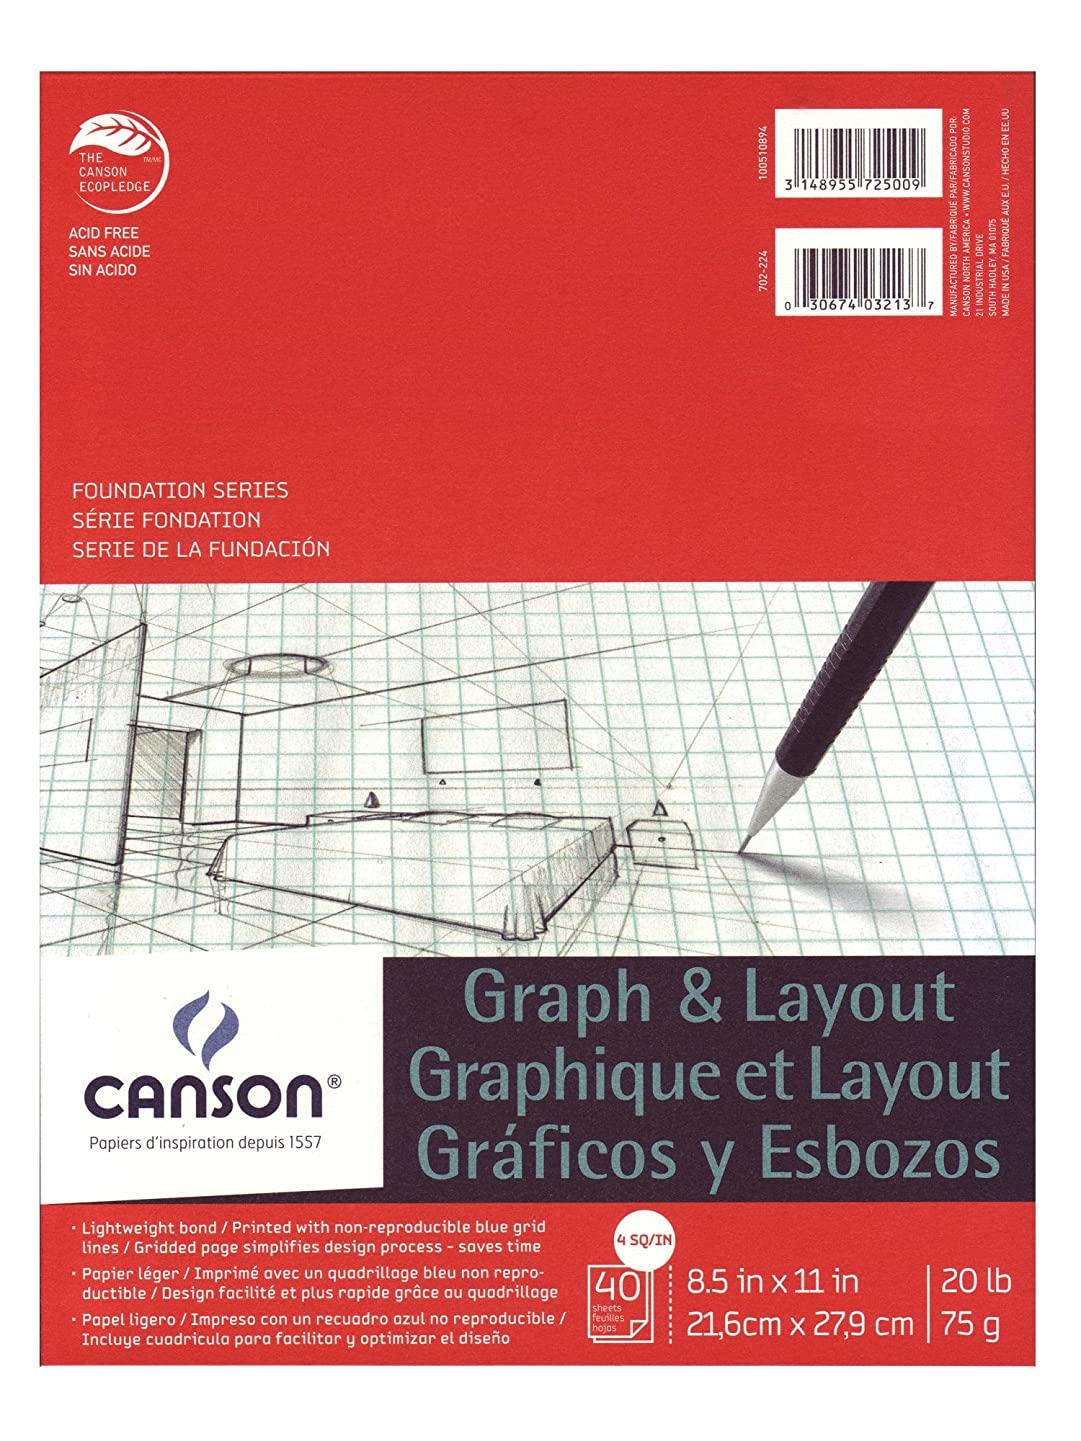 Canson Crossection Pad 40 SHTS 8.5X11 4SQ